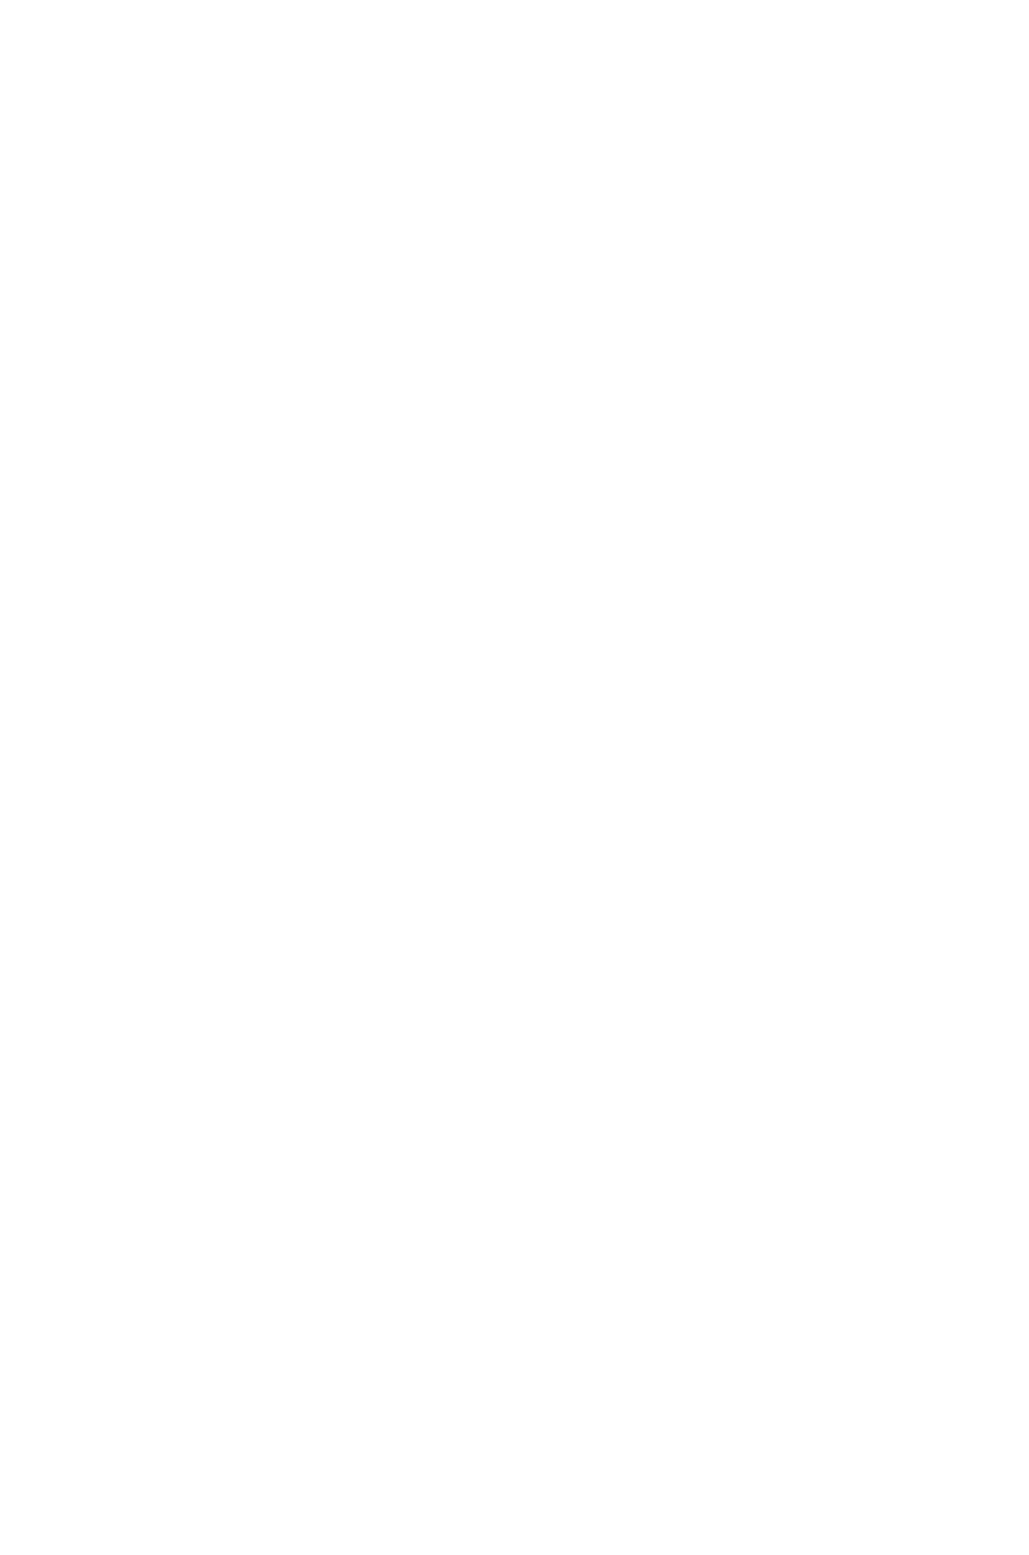 Ifinity office address location marker